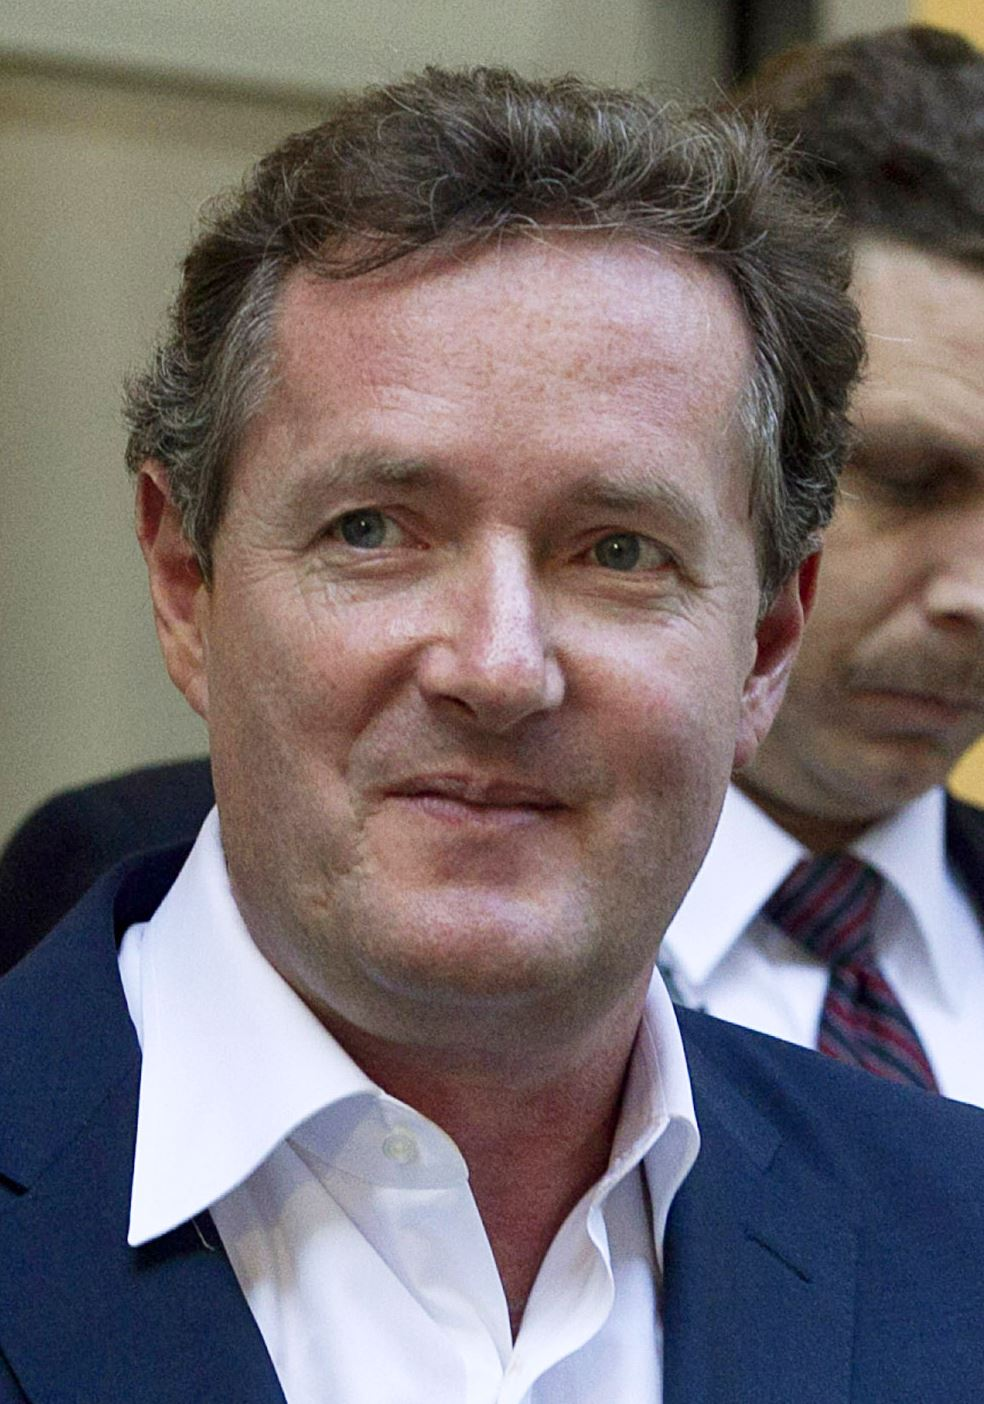 Interviewed By The Tarot: Piers Morgan Interviewed By Police In Hacking Case